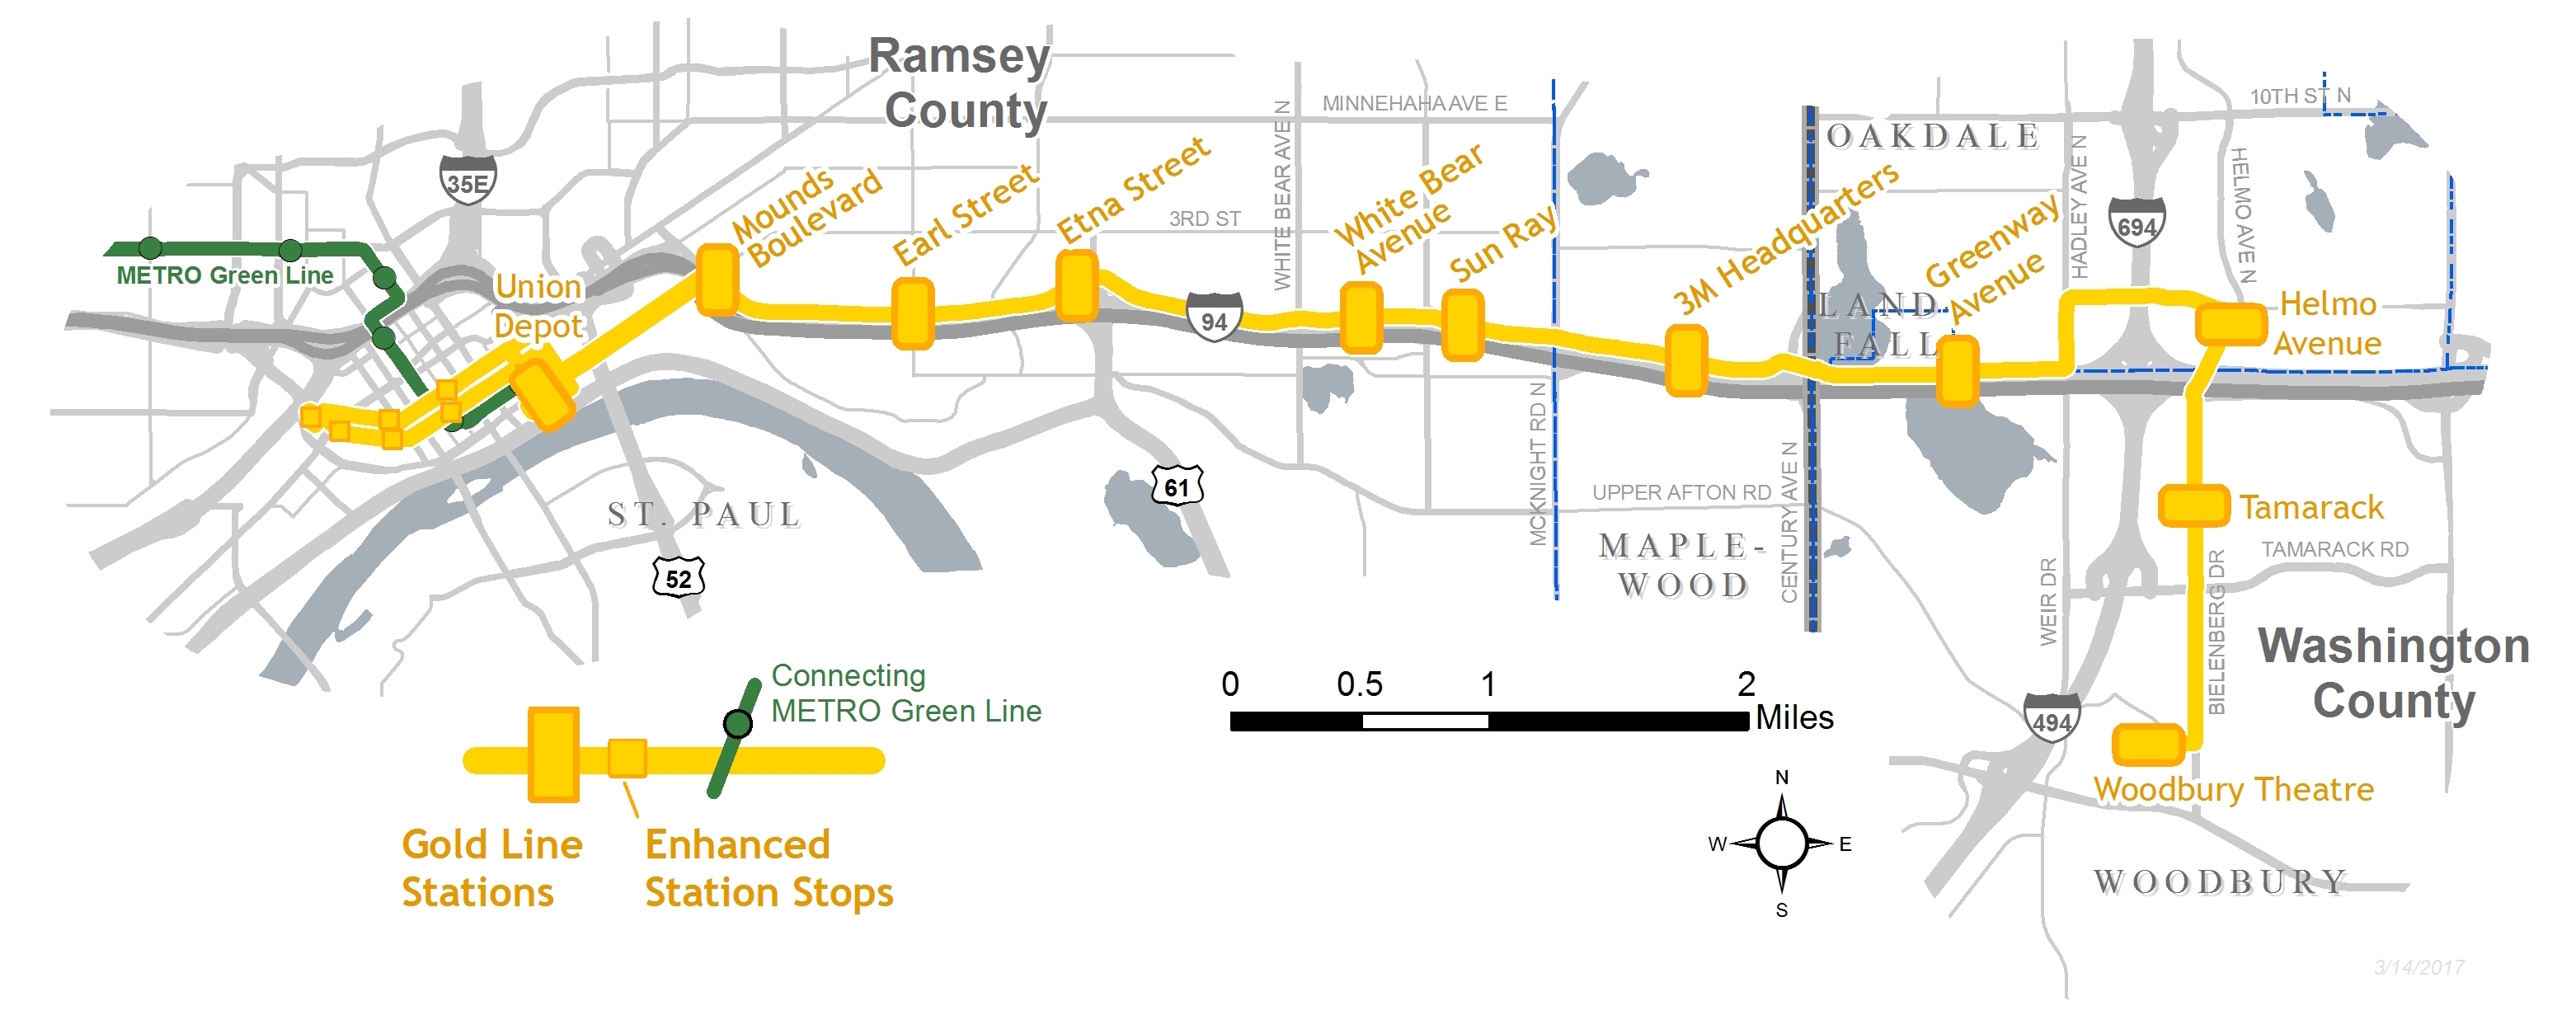 Gold Line Route   Metro Transit